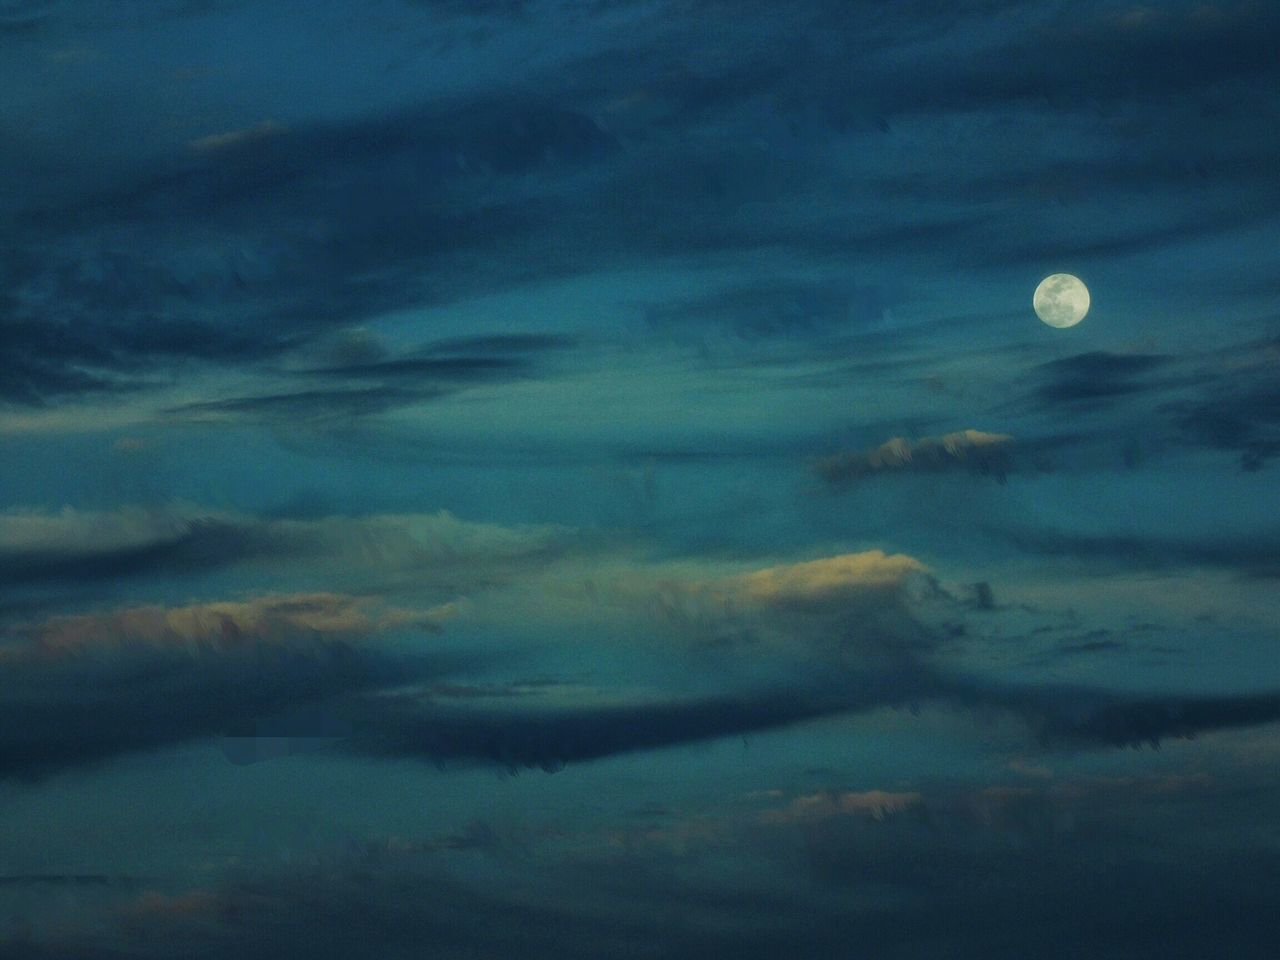 Low Angle View Of Full Moon In Sky At Night